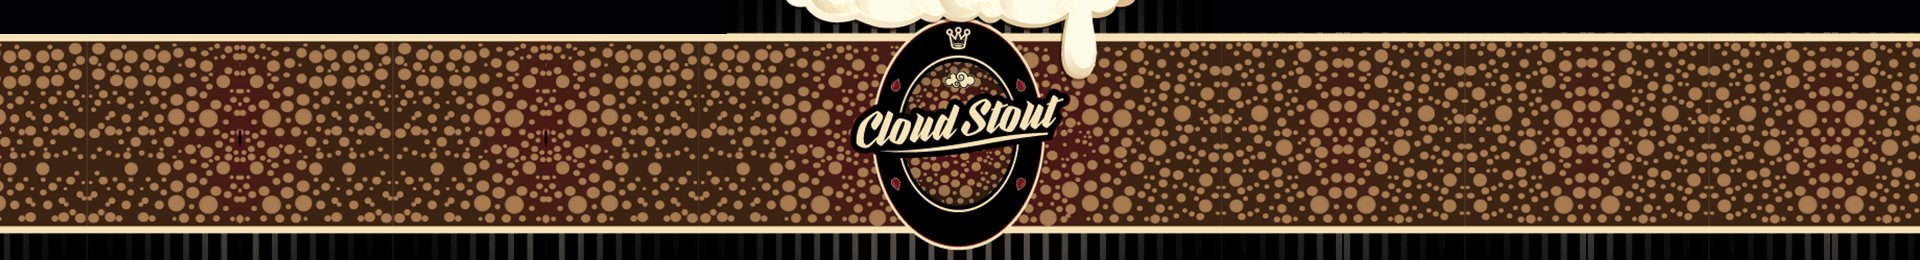 cloud-stout_banner